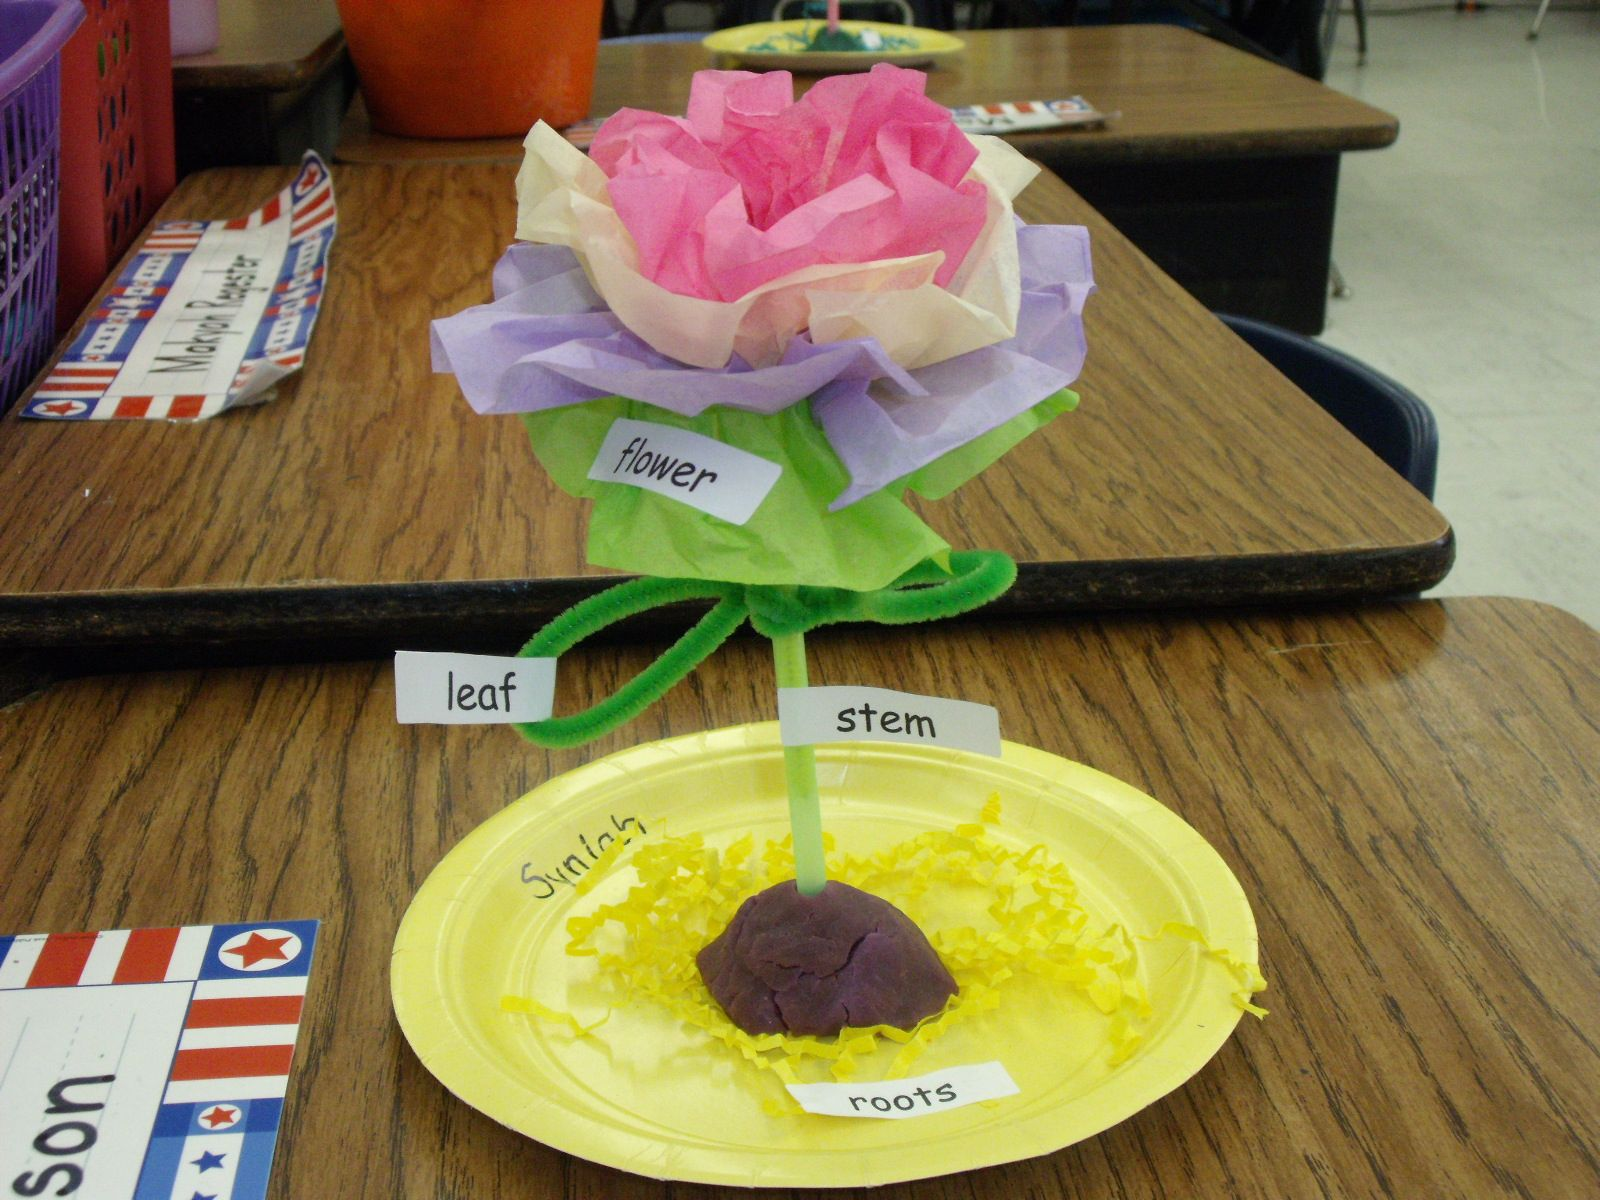 3D plant model made with pipe cleaners, tissue paper, a